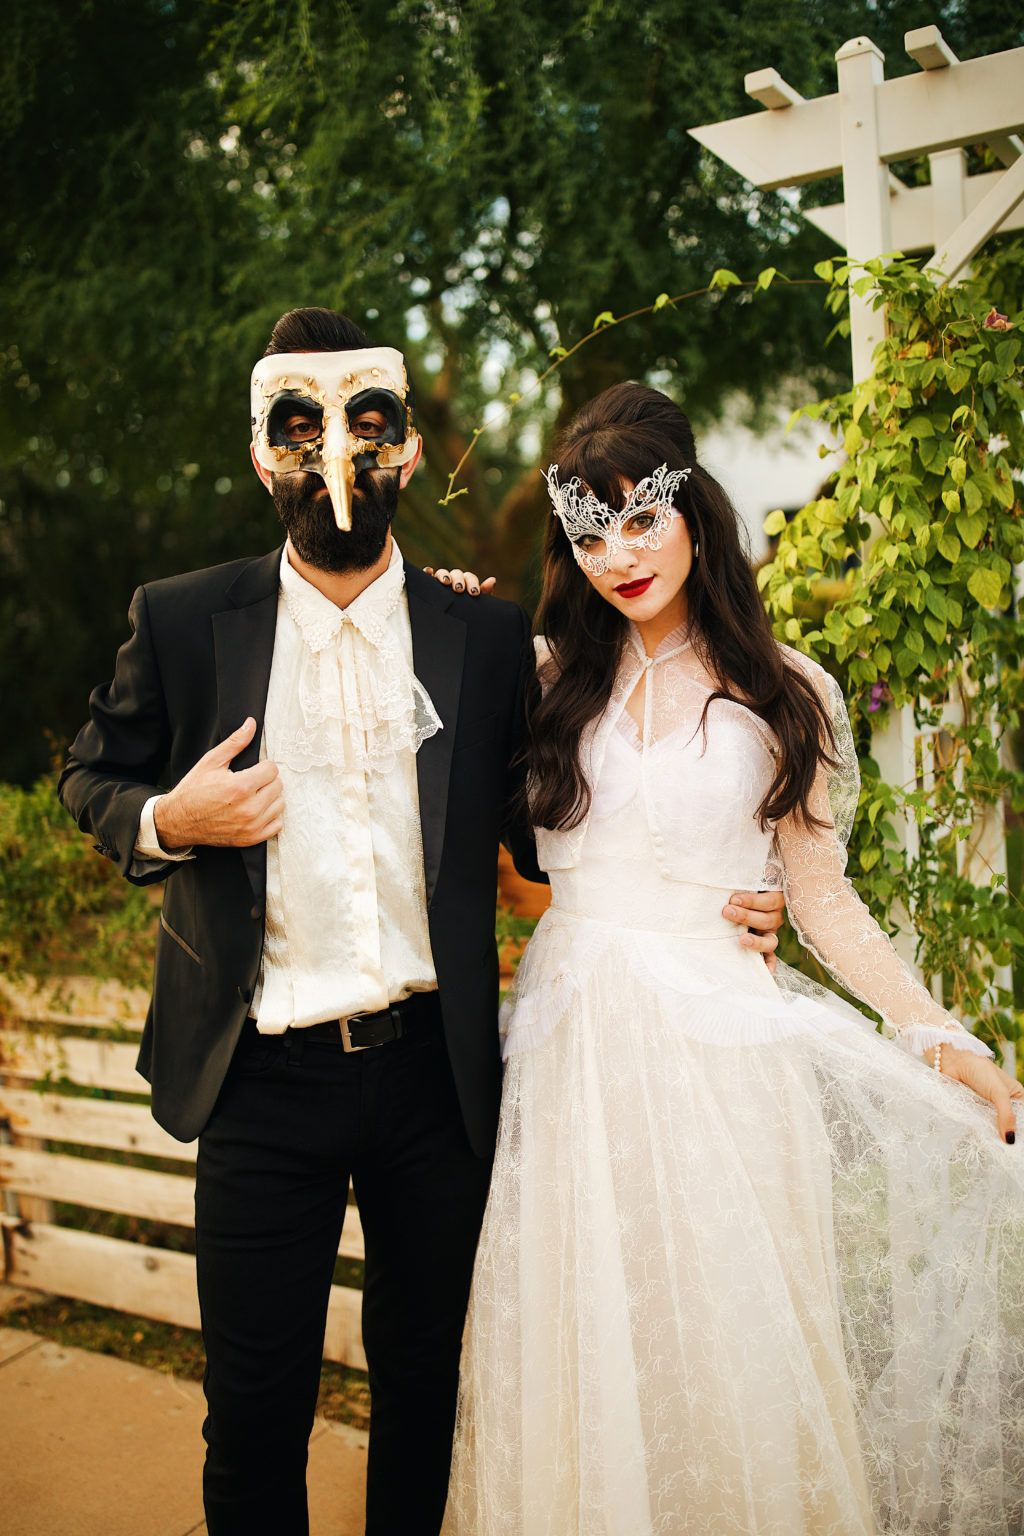 New Darlings Couples Costume Ideas Masquerade Ball Halloween Costume Masquerade Ball Costume Masquerade Outfit Masquerade Ball Outfits